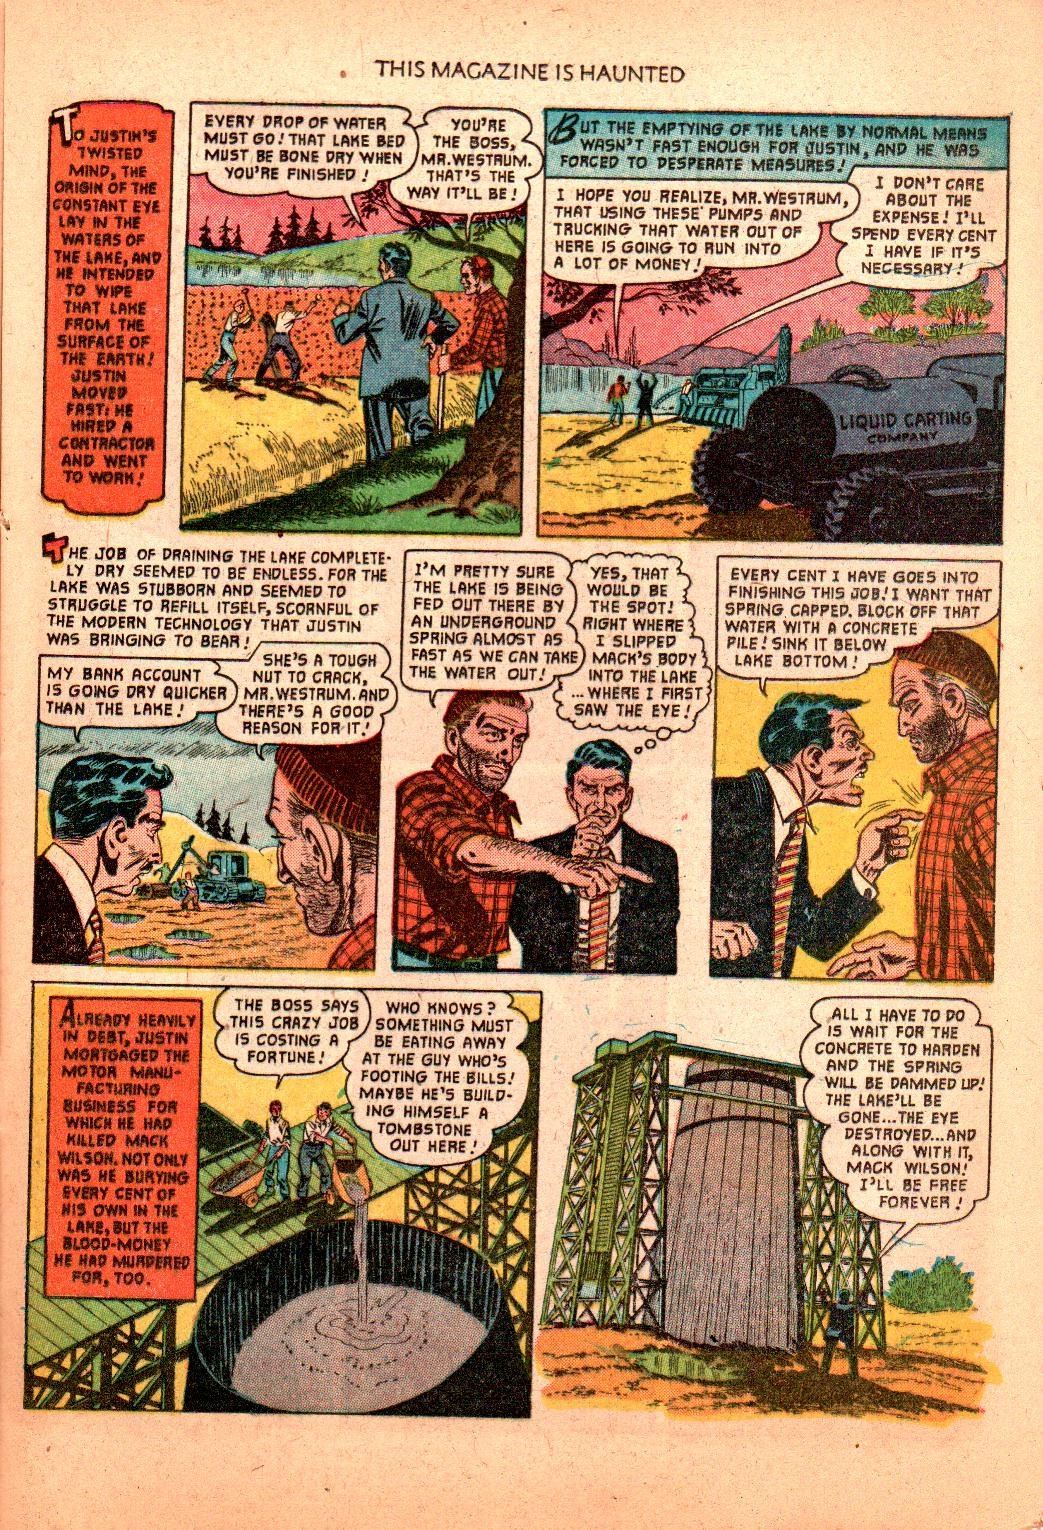 Read online This Magazine Is Haunted comic -  Issue #4 - 13